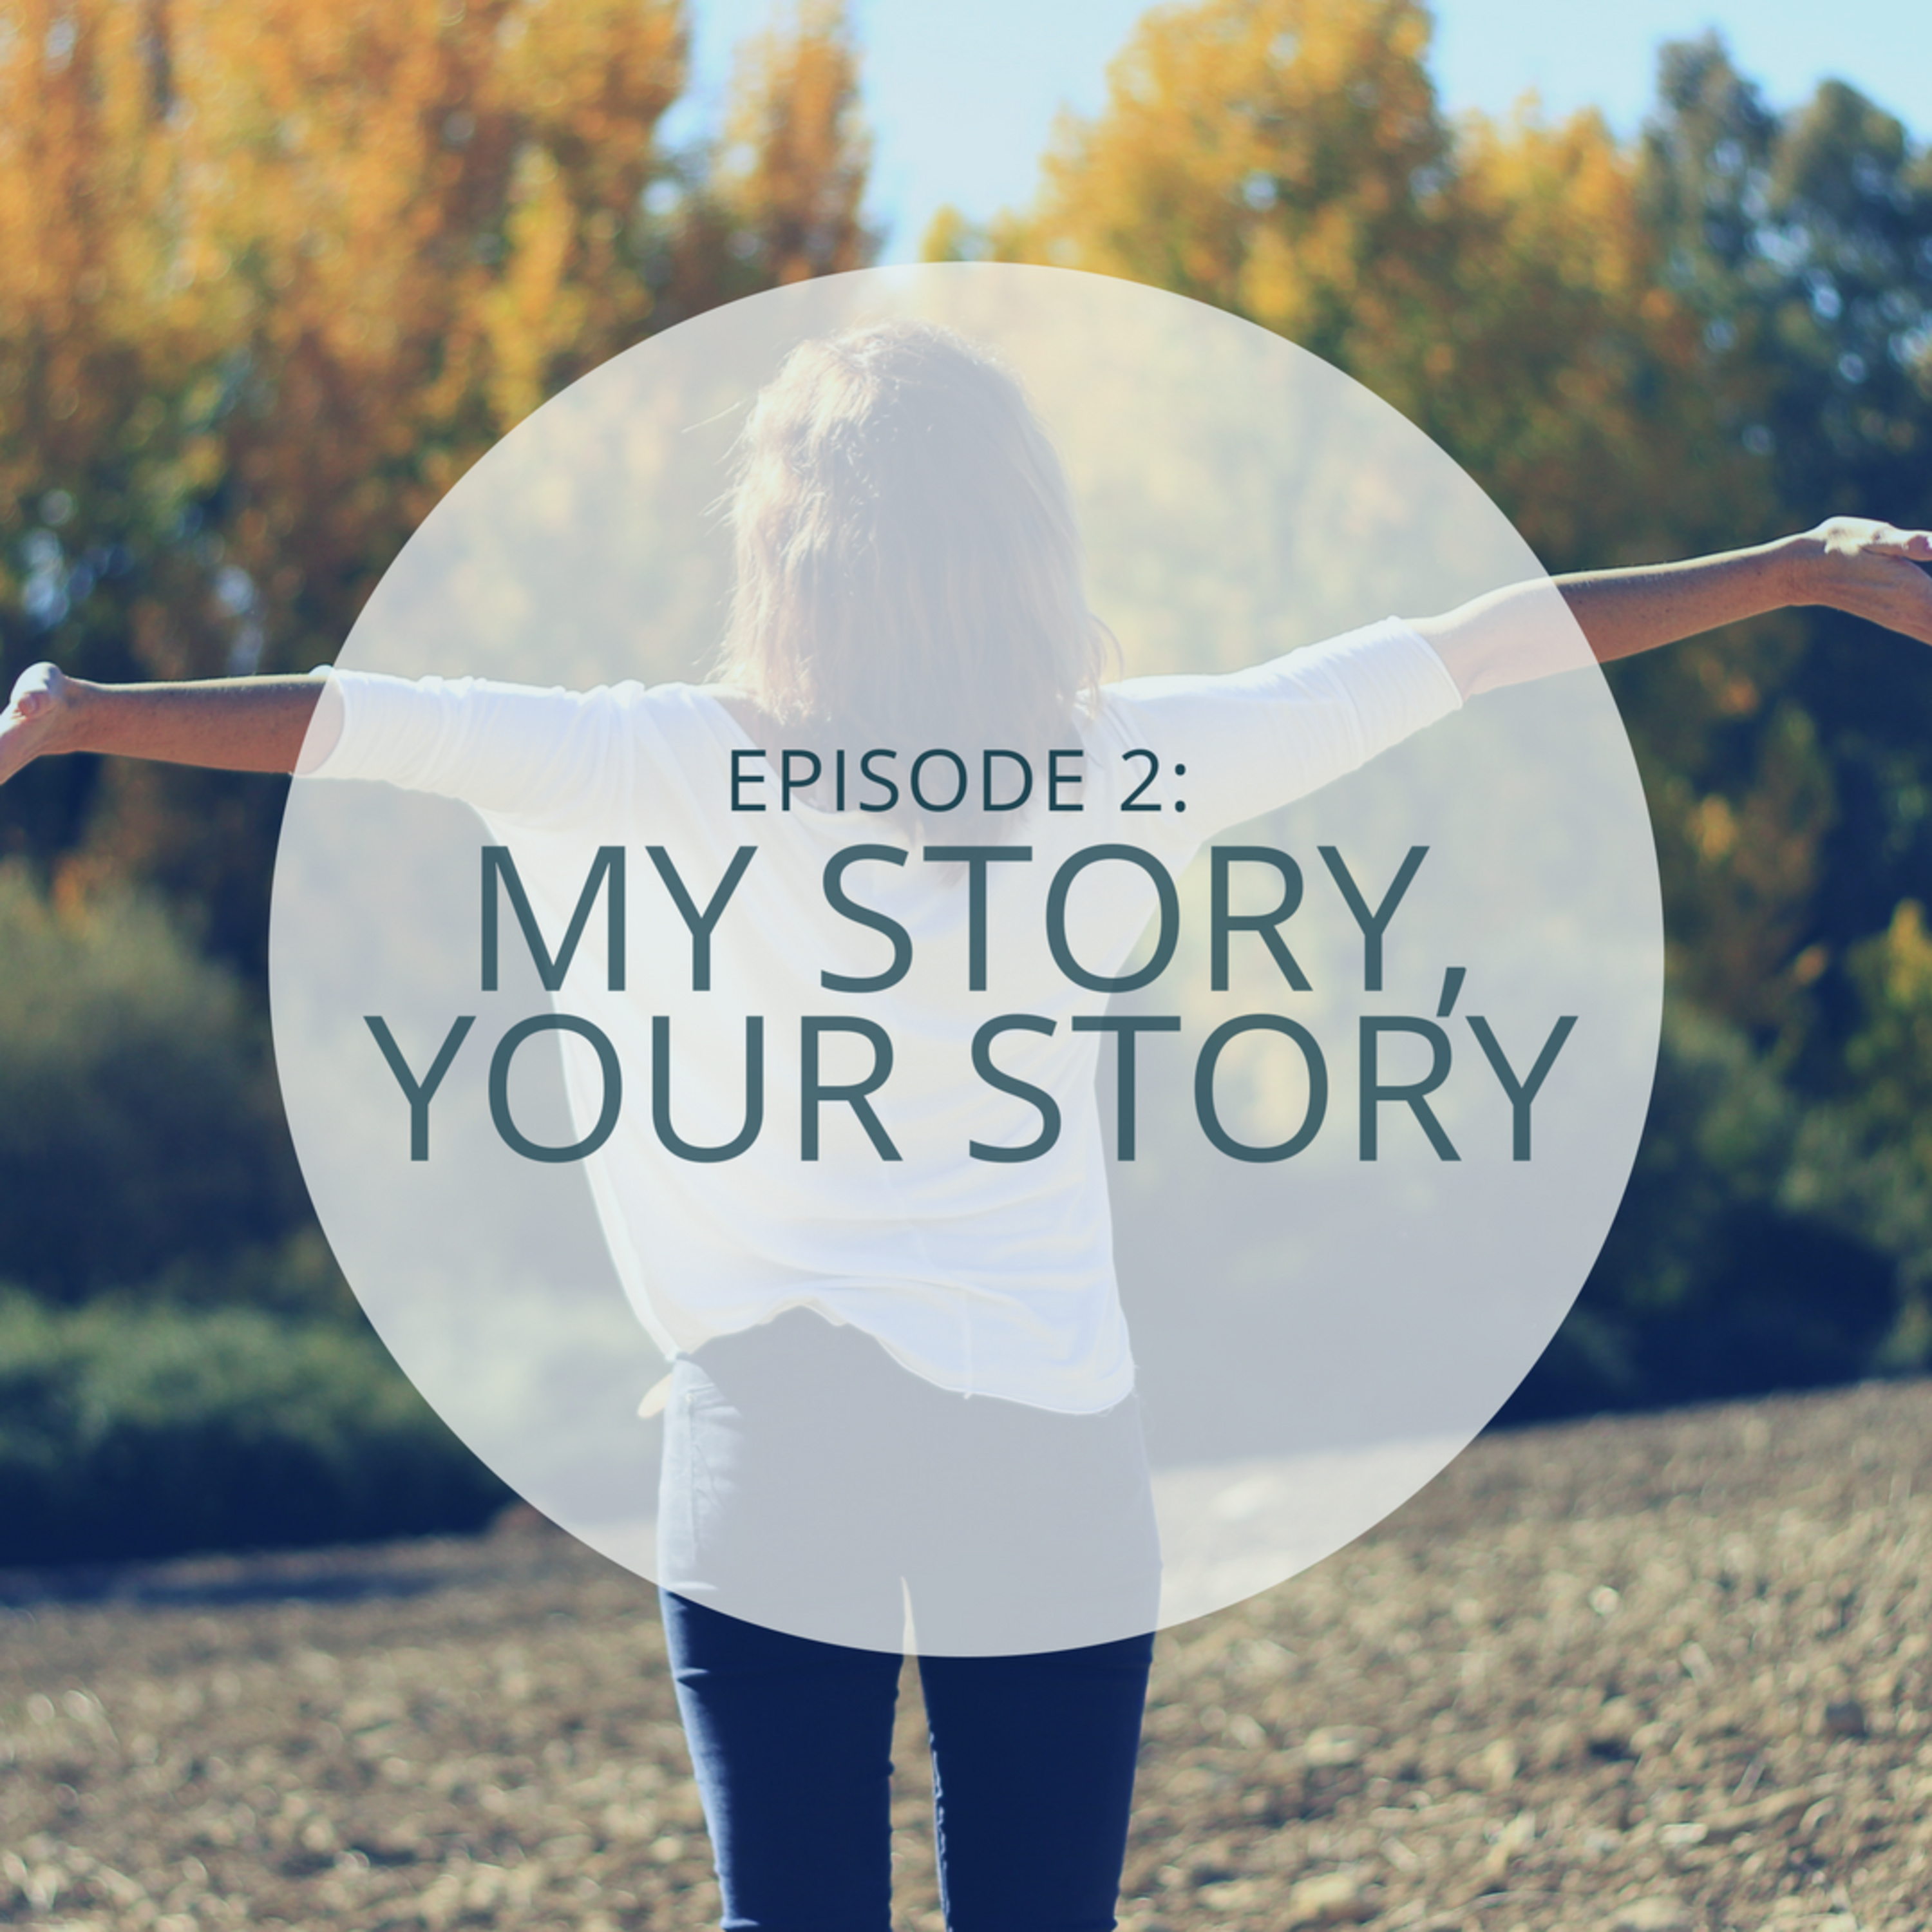 My Story, Your Story